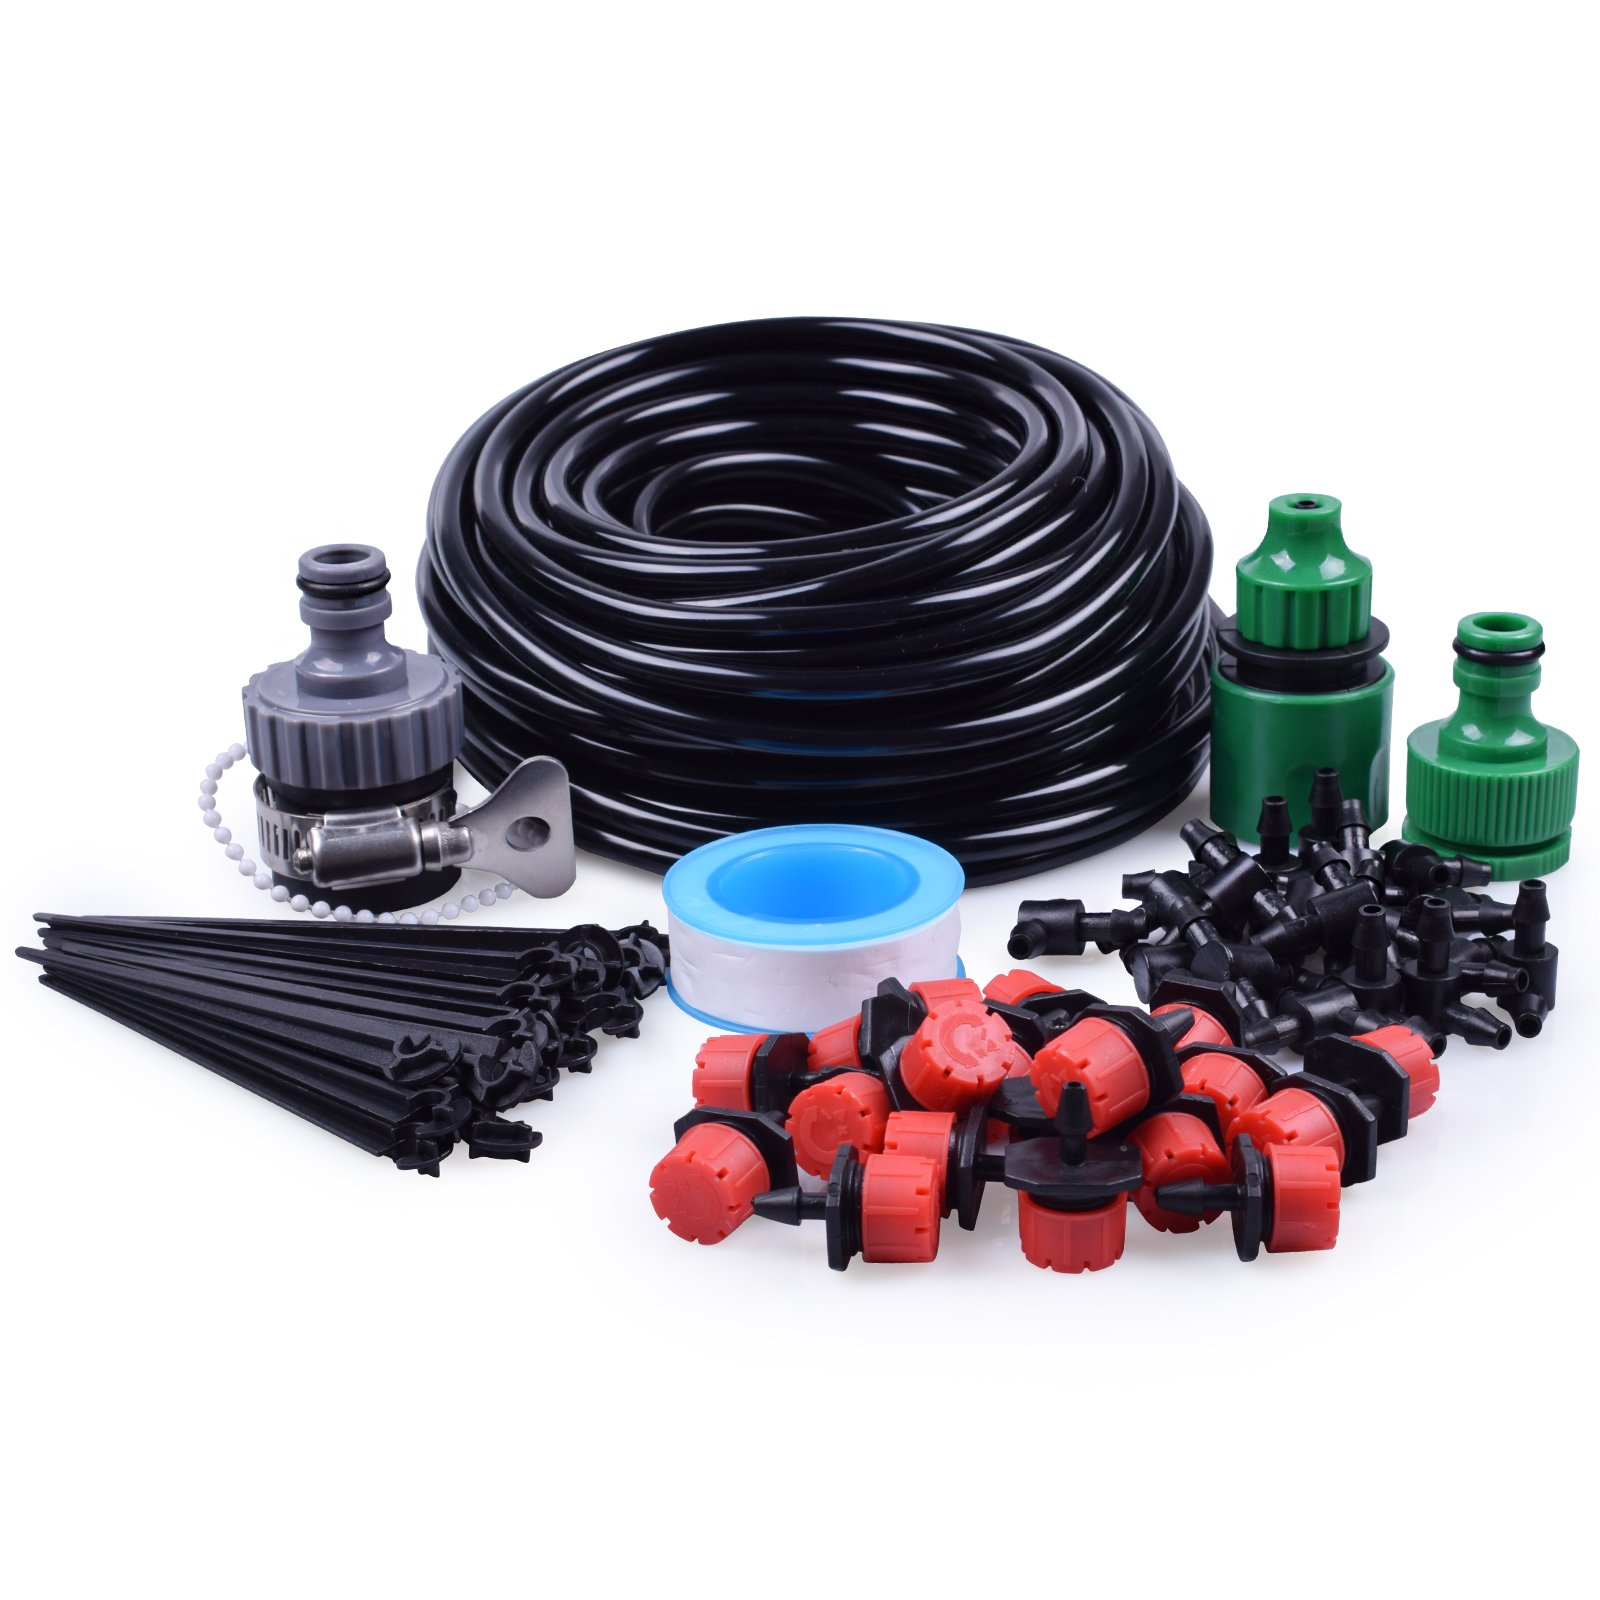 "MIXC 1/4-inch Drip Irrigation Kits Accessories Plant Watering System 50ft 1/4"" Blank Distribution Tubing Hose, 20pcs Drippers, 19pcs Barbed Fittings, Support Stakes, Quick Adapter, Model: GG0C"